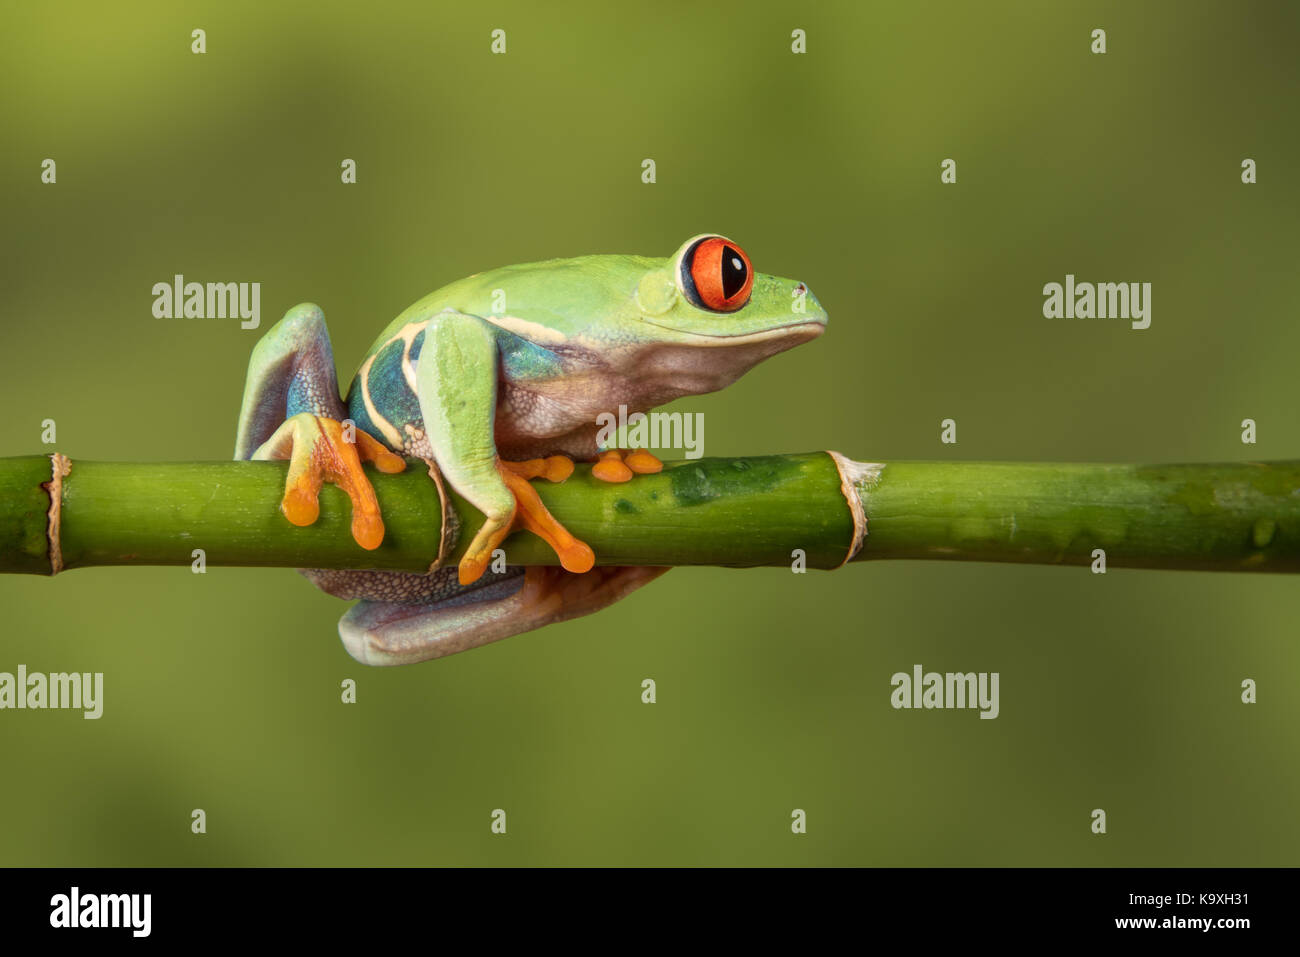 Close side view profile image of a red eyed tree frog balancing on a bamboo cane looking to the right - Stock Image